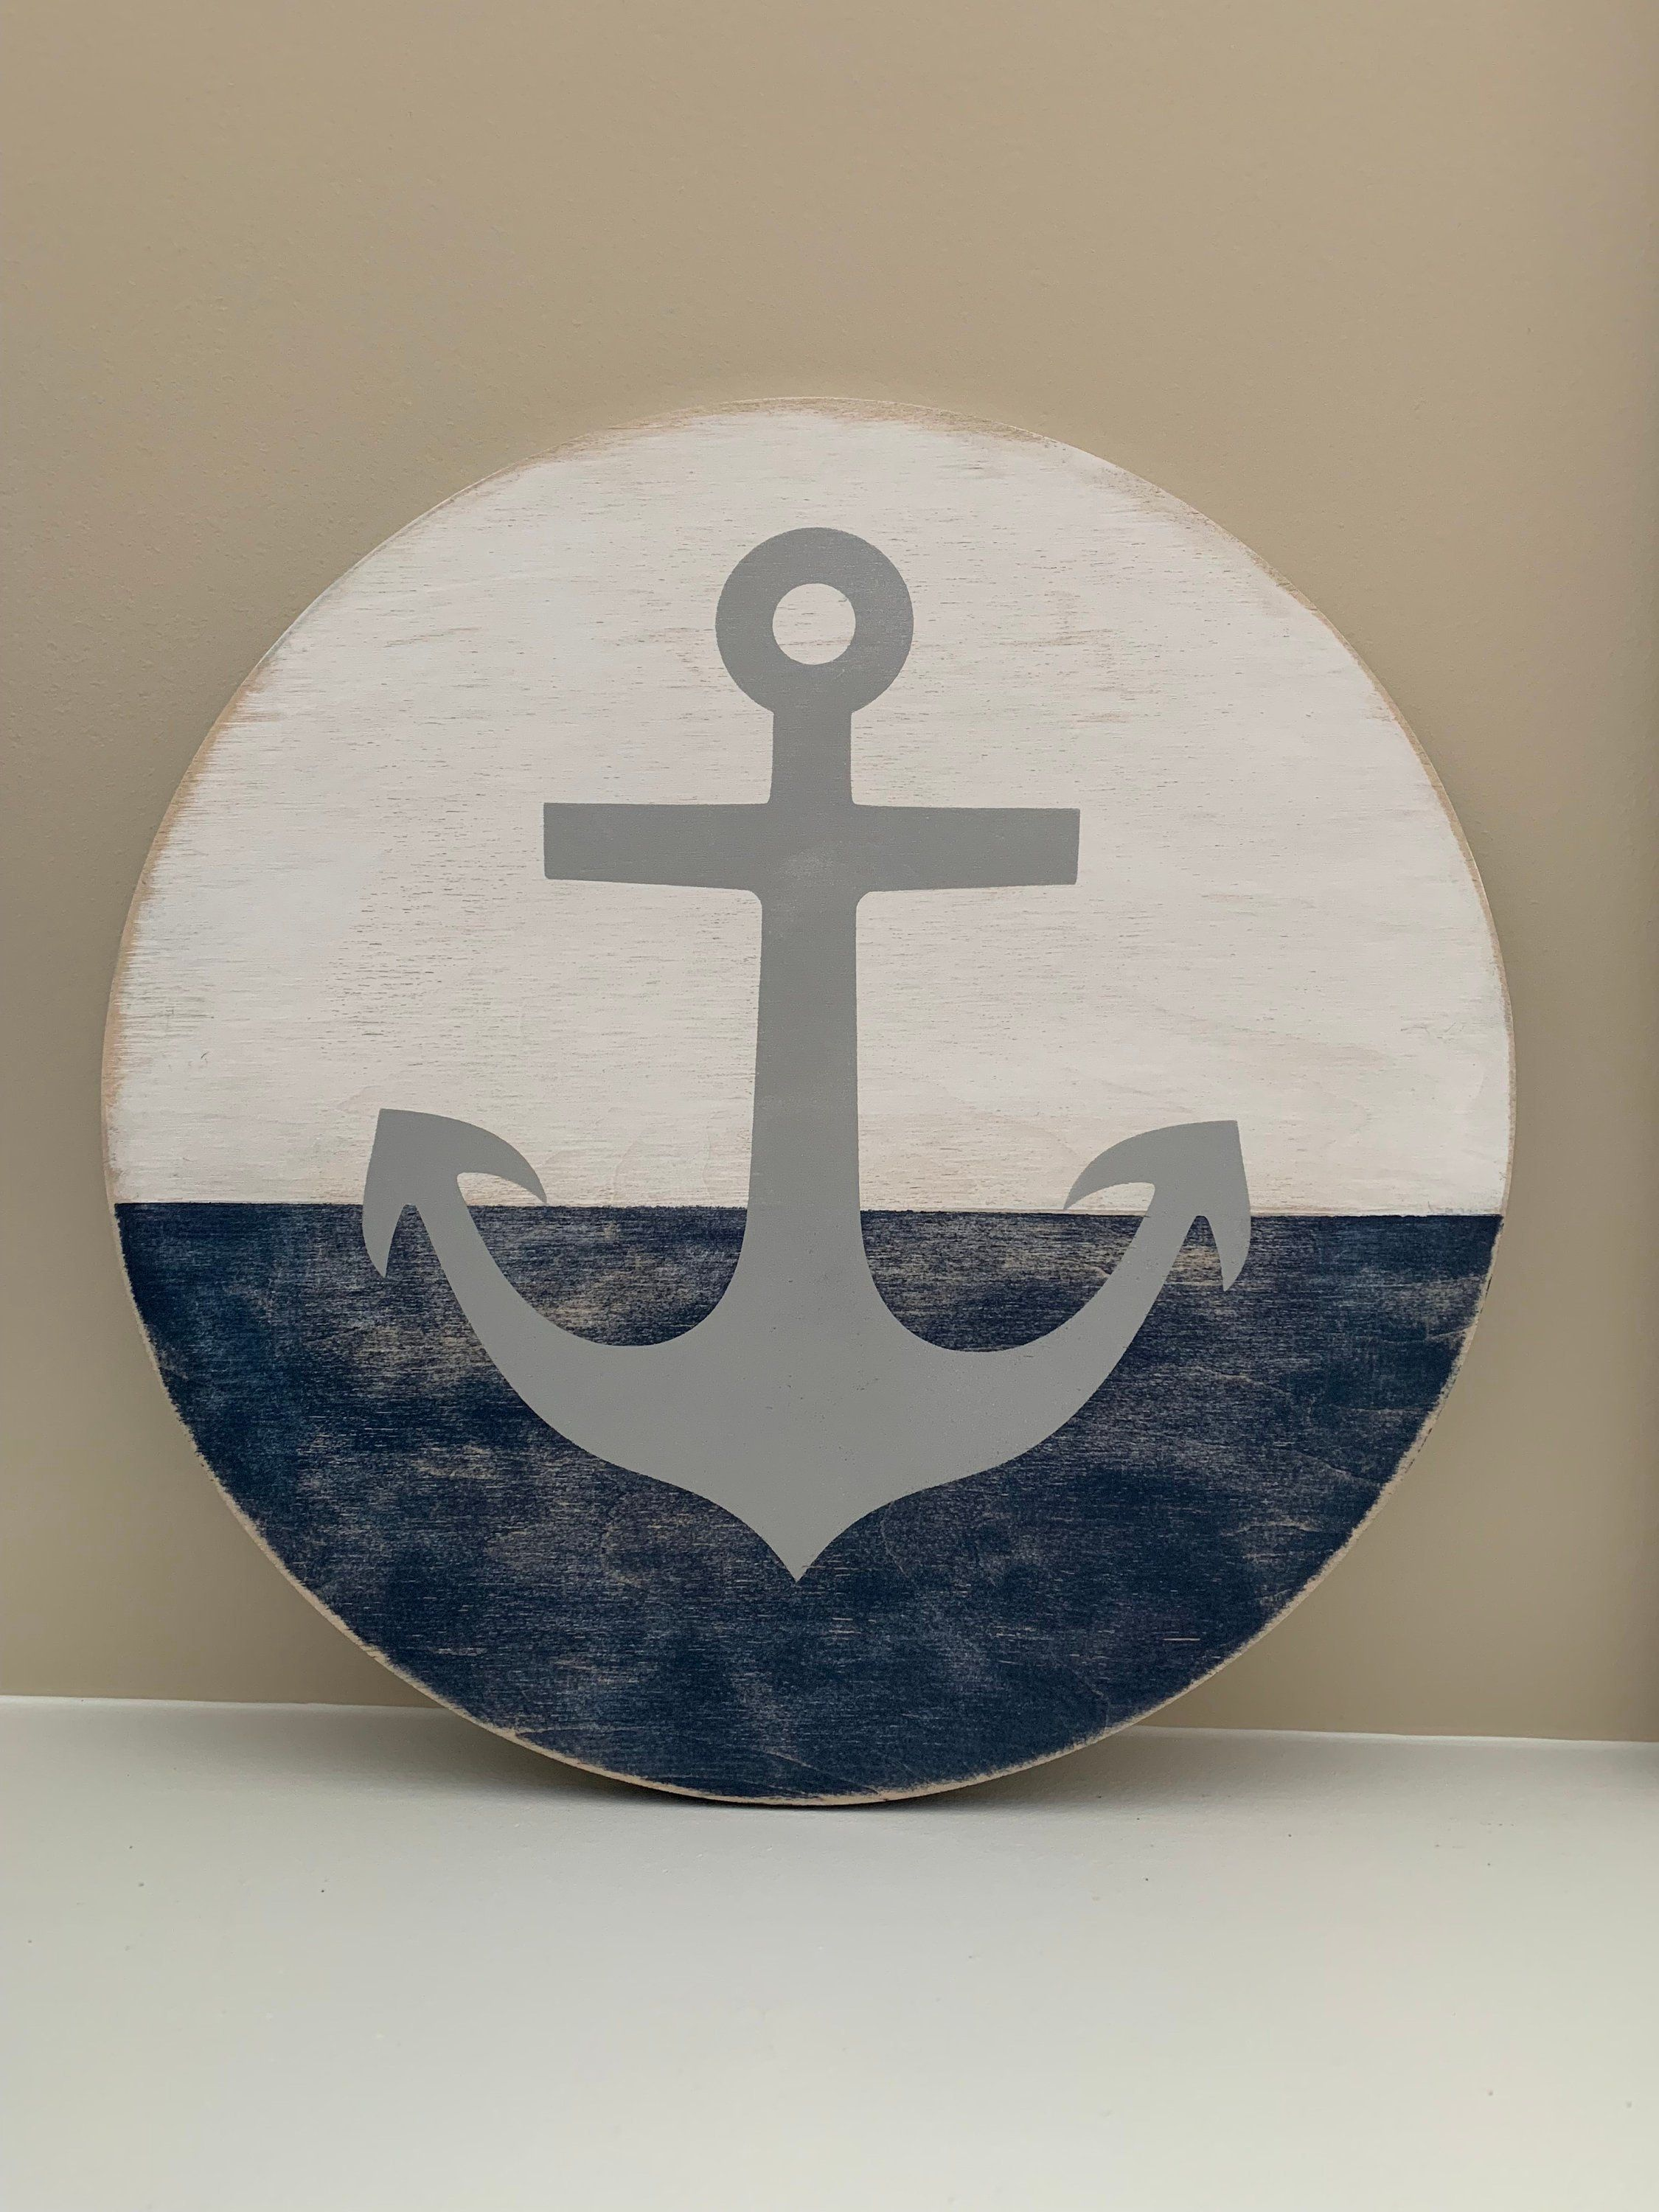 Photo of Nautical Anchor Round Wood Wall Sign Art, Coastal Farmhouse, Nautical Decor, Coastal, Beach Home Decor, Lake House Decor, Round sign